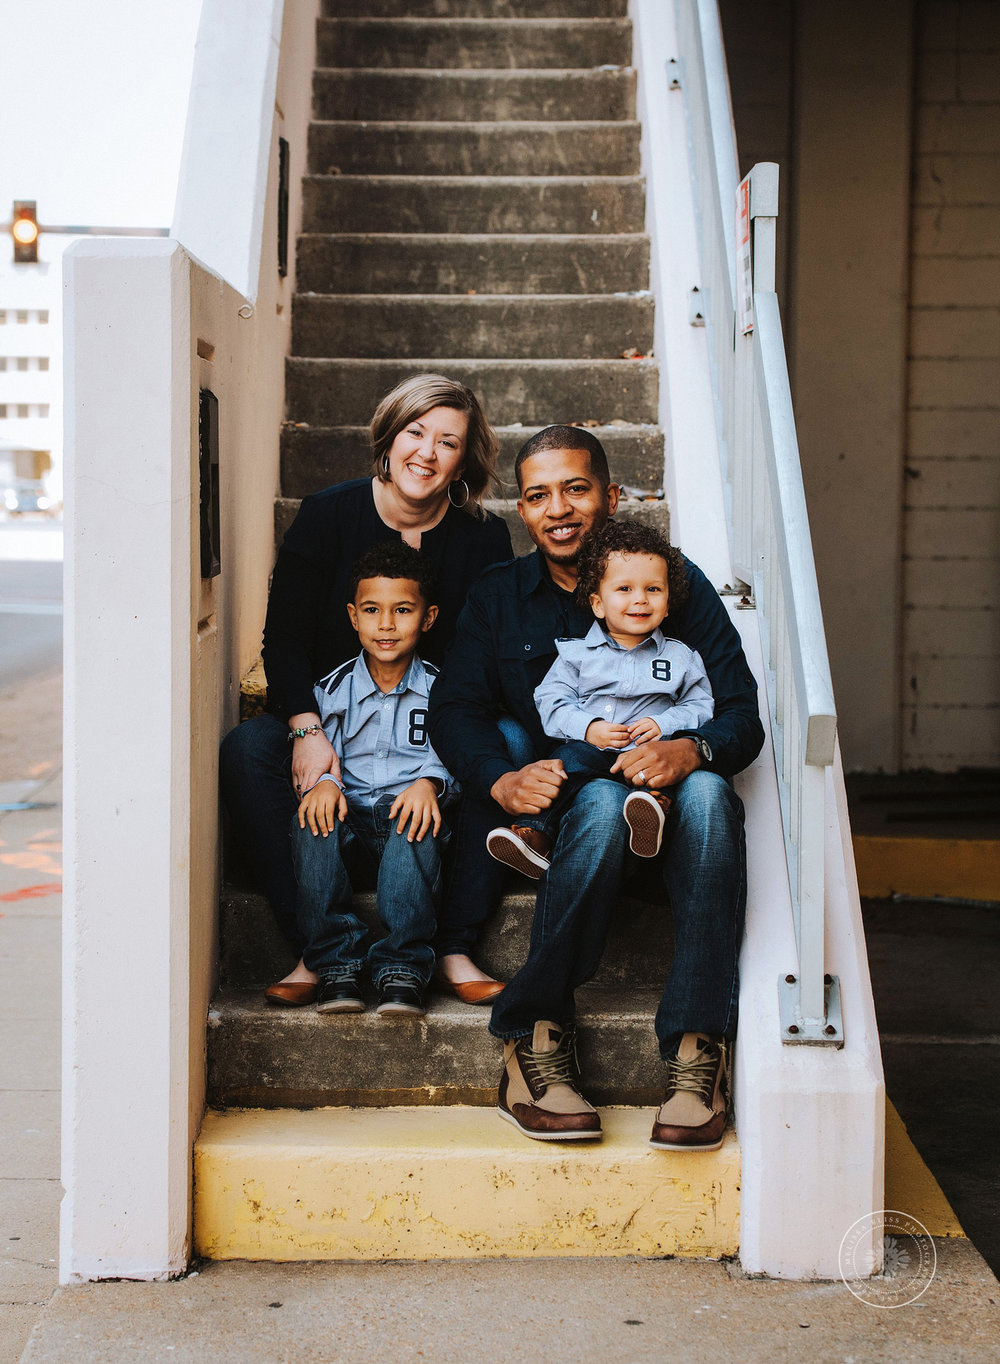 family-of-four-sitting-on-steps-urban-virginia-beach-melissa-bliss-photography